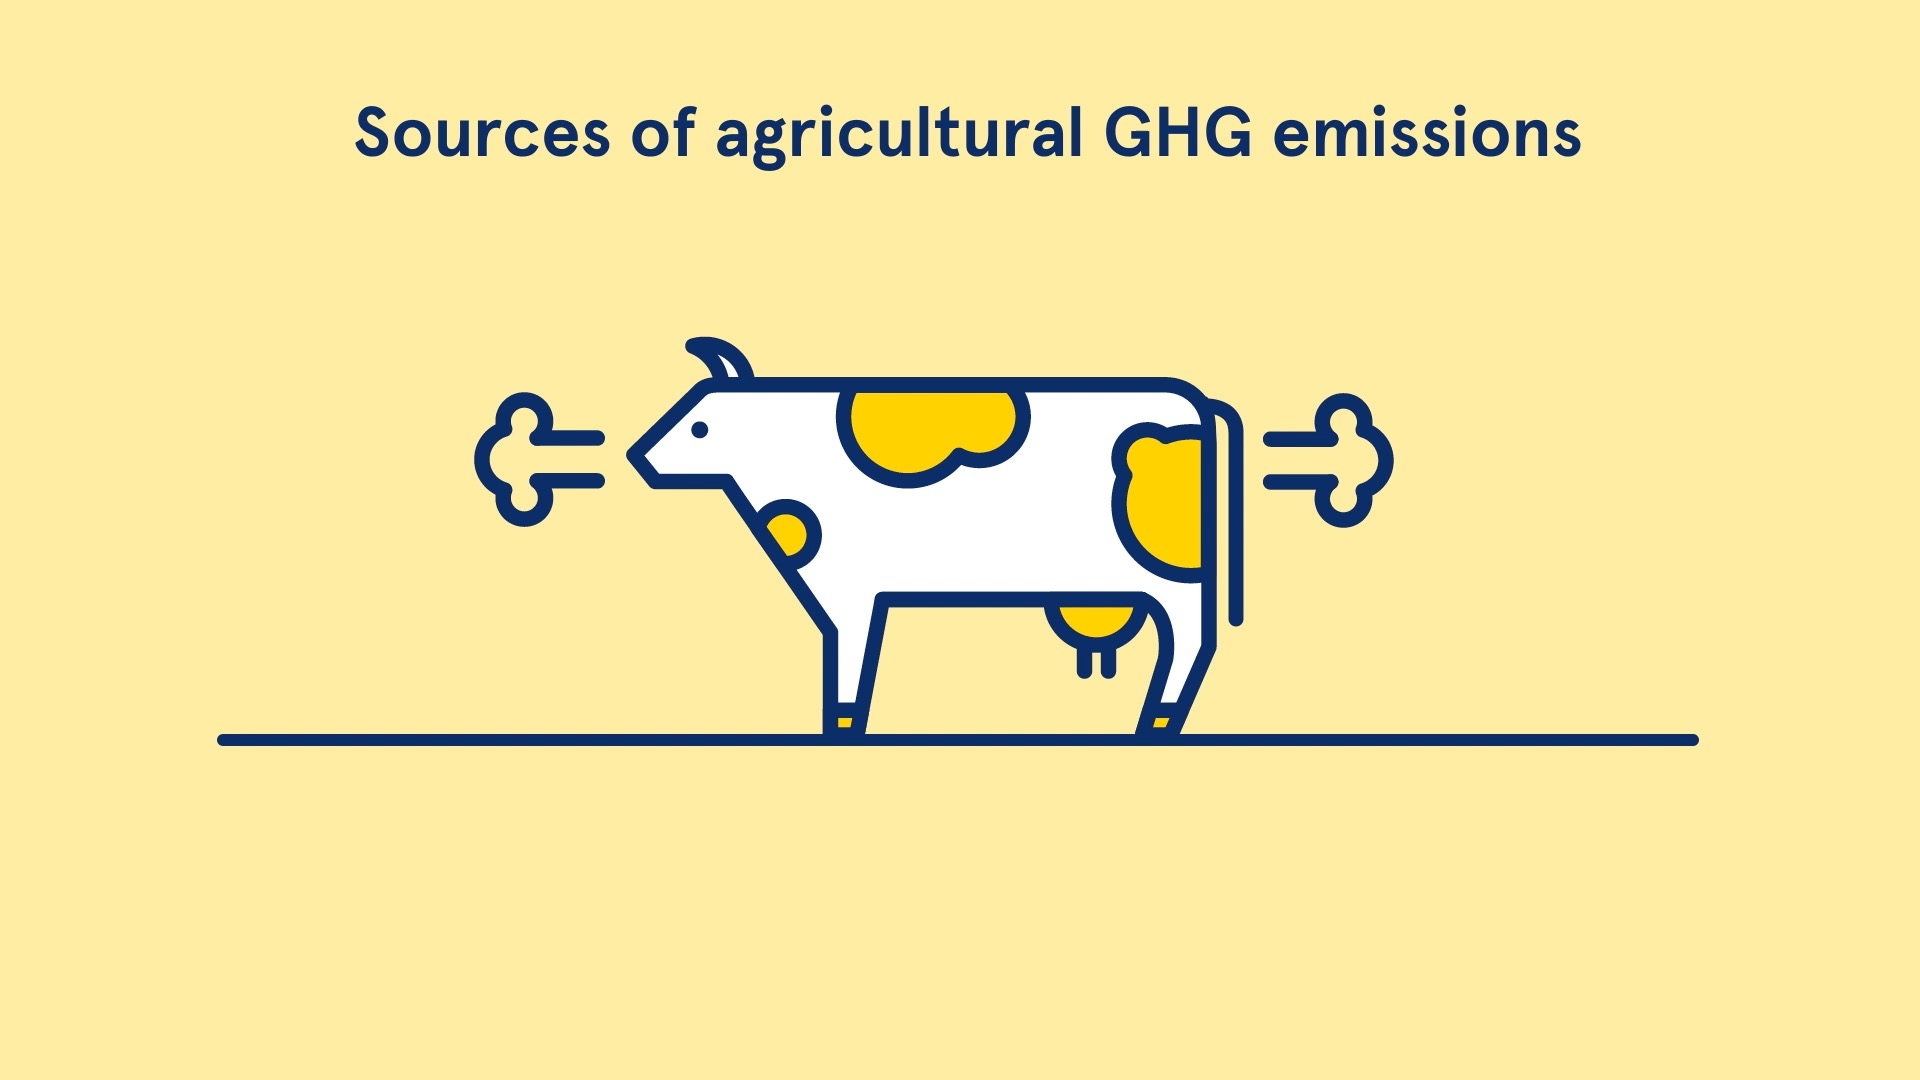 Sources of agricultural GHG emissions